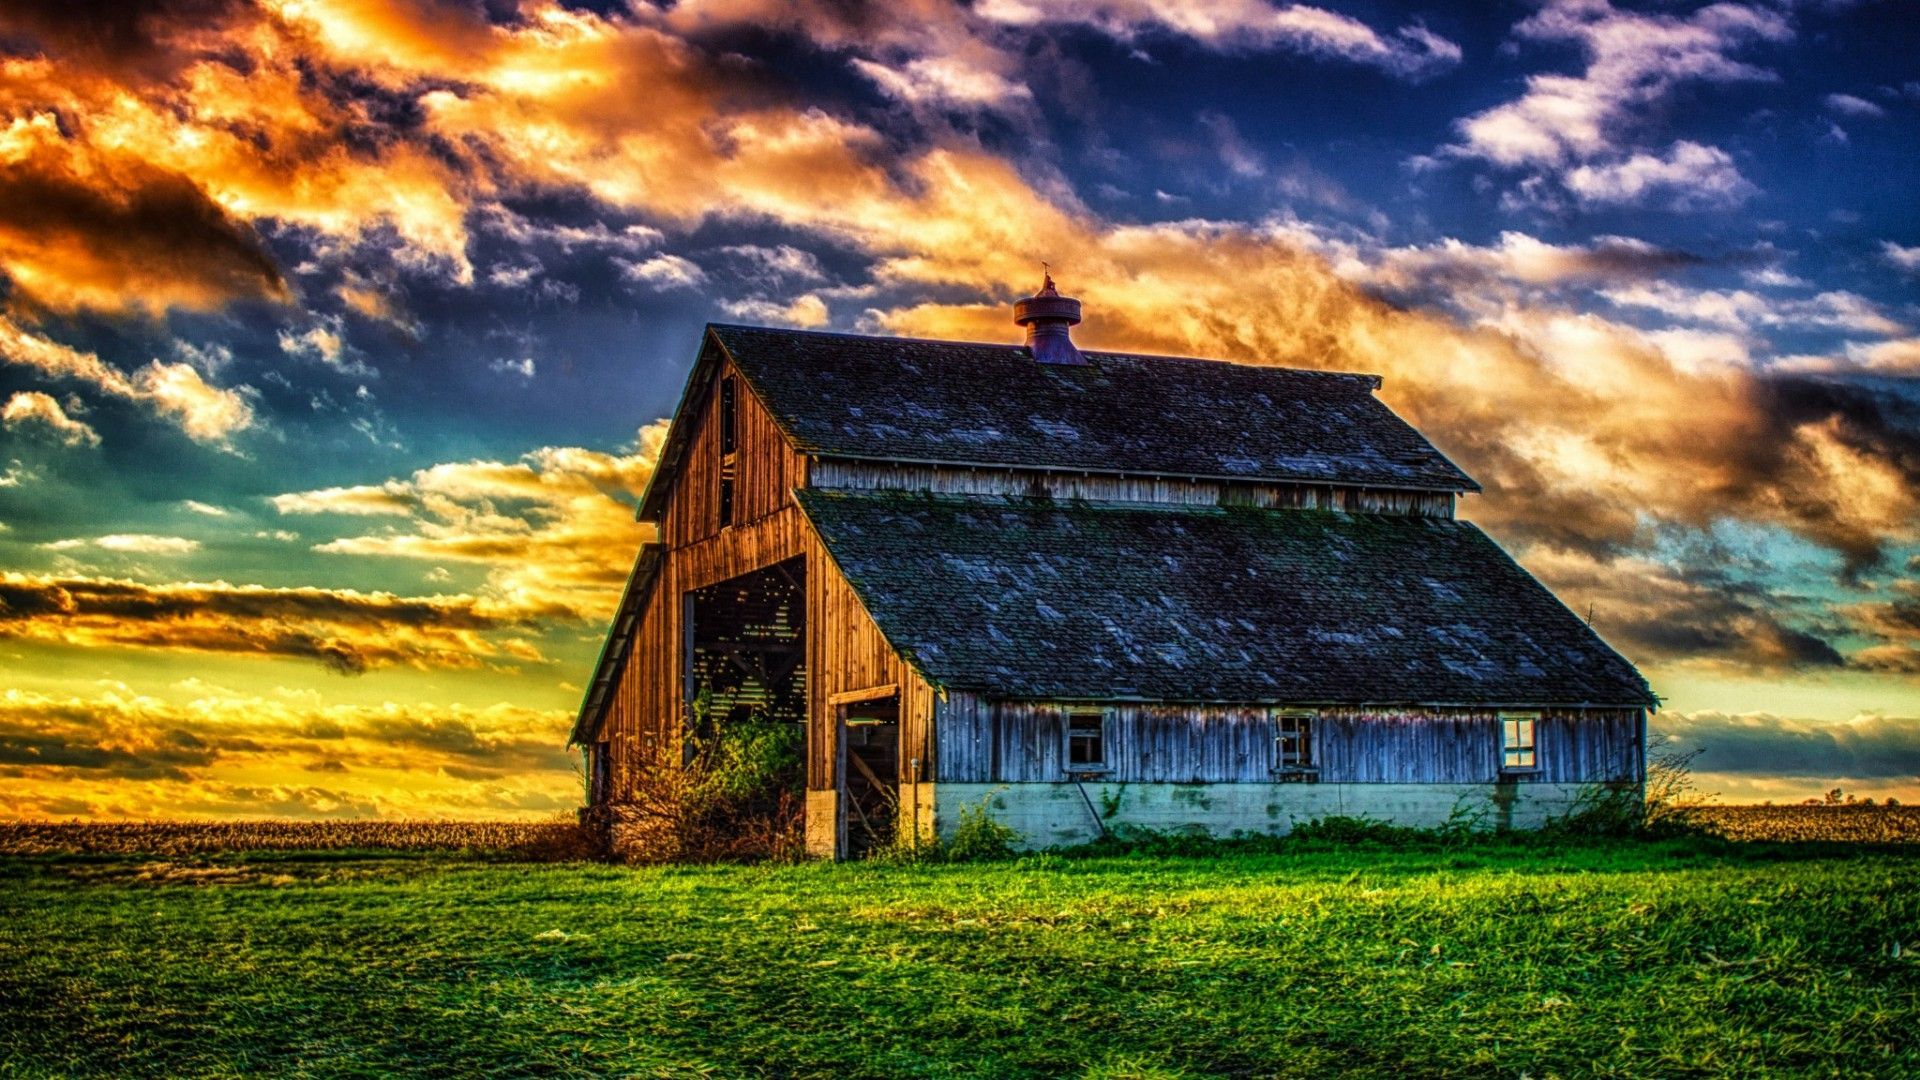 Old Barns Wallpapers Top Free Old Barns Backgrounds